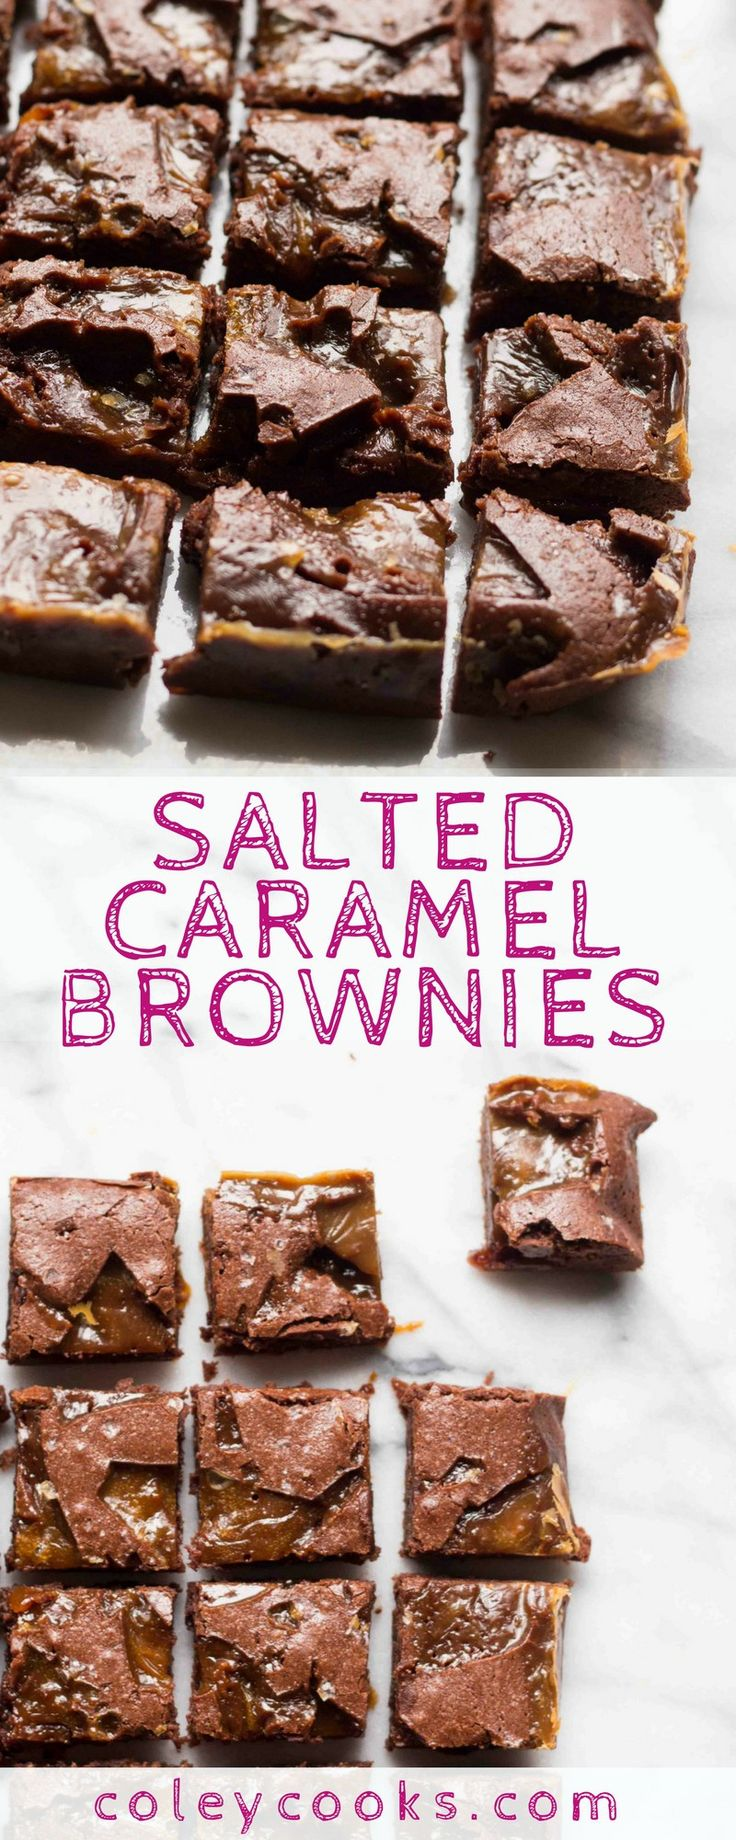 SALTED CARAMEL BROWNIES | This the BEST easy recipe for Salted Caramel Brownies! Super fudgy, chewy, salty, loaded with chocolate - they're like fudge! The best dessert ever. | ColeyCooks.com